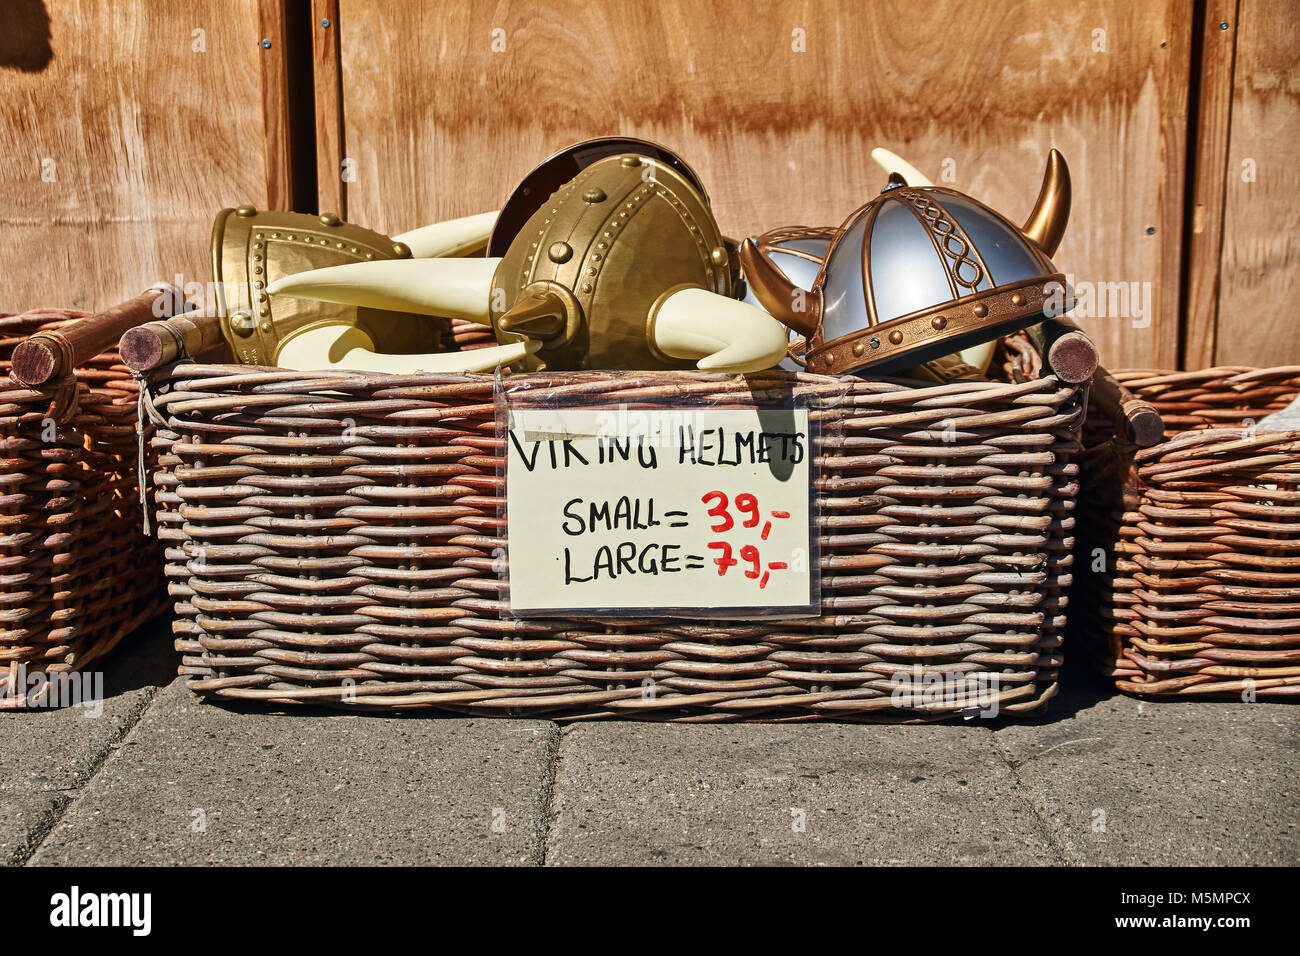 Oslo, Norway: May 1 2017 - Toy horned helmets in traditional Norwegian style in wicker basket are sold on the street Stock Photo